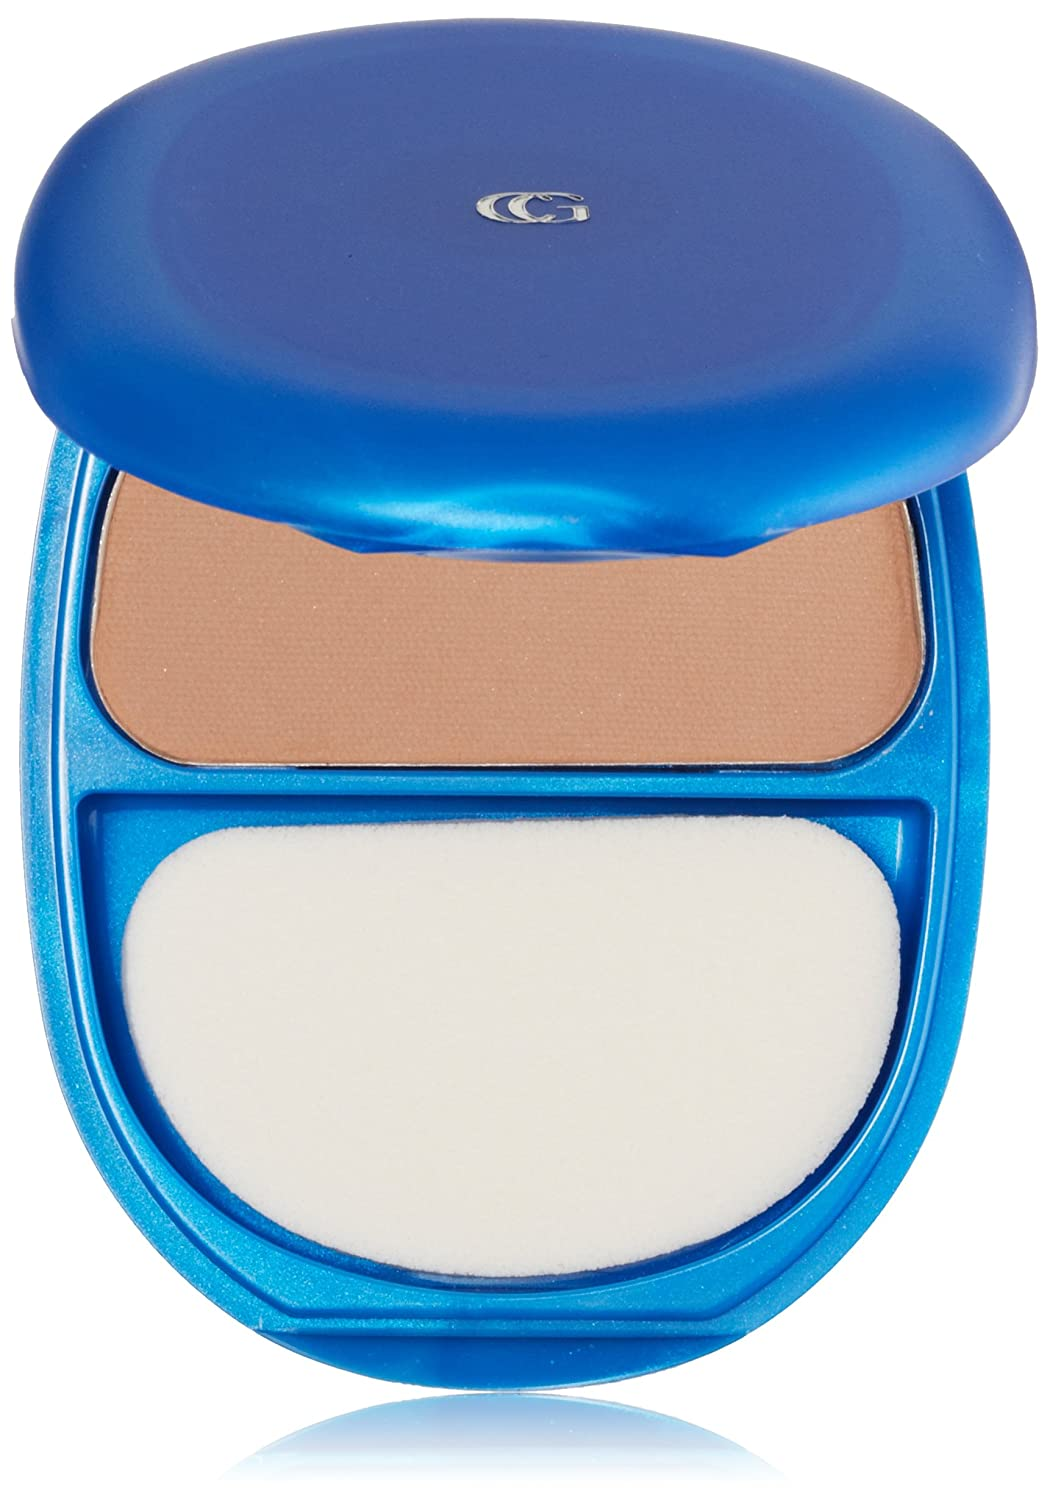 COVERGIRL FRESH COMPLEXION POCKET POWDER FOUNDATION #630 CLASSIC BEIGE B000XSDHO0